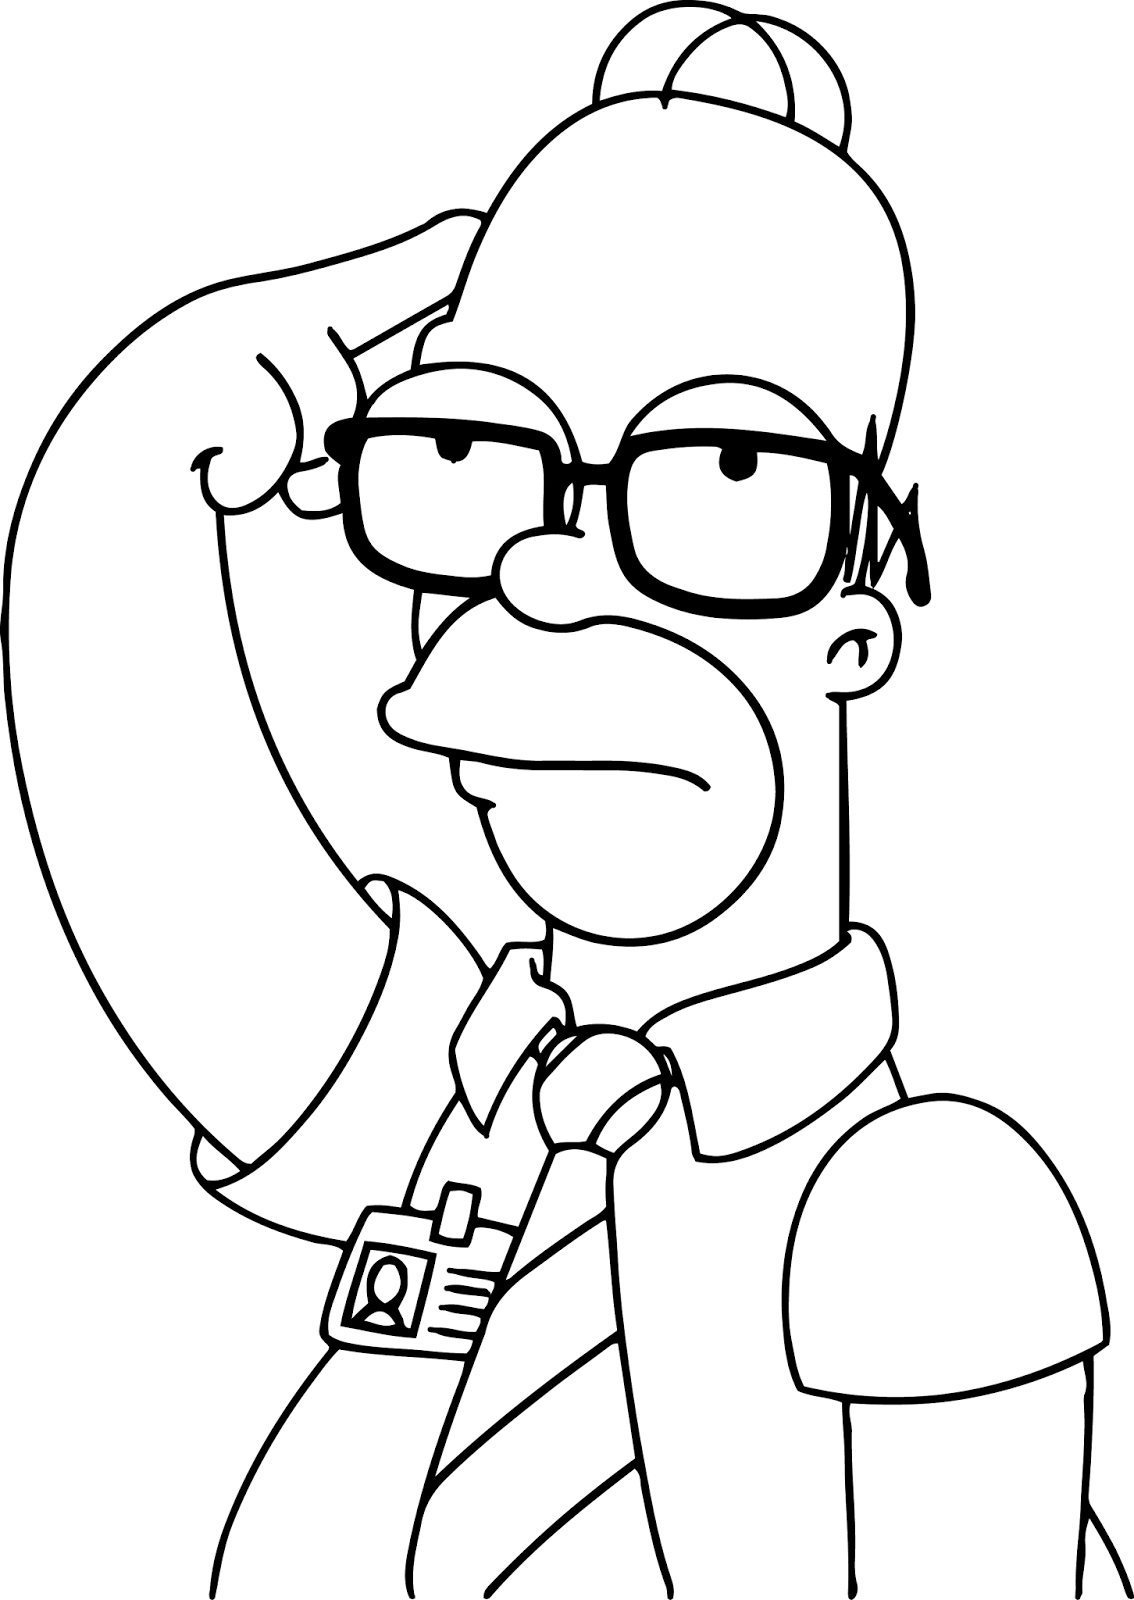 e30613 coloring pages - photo#21